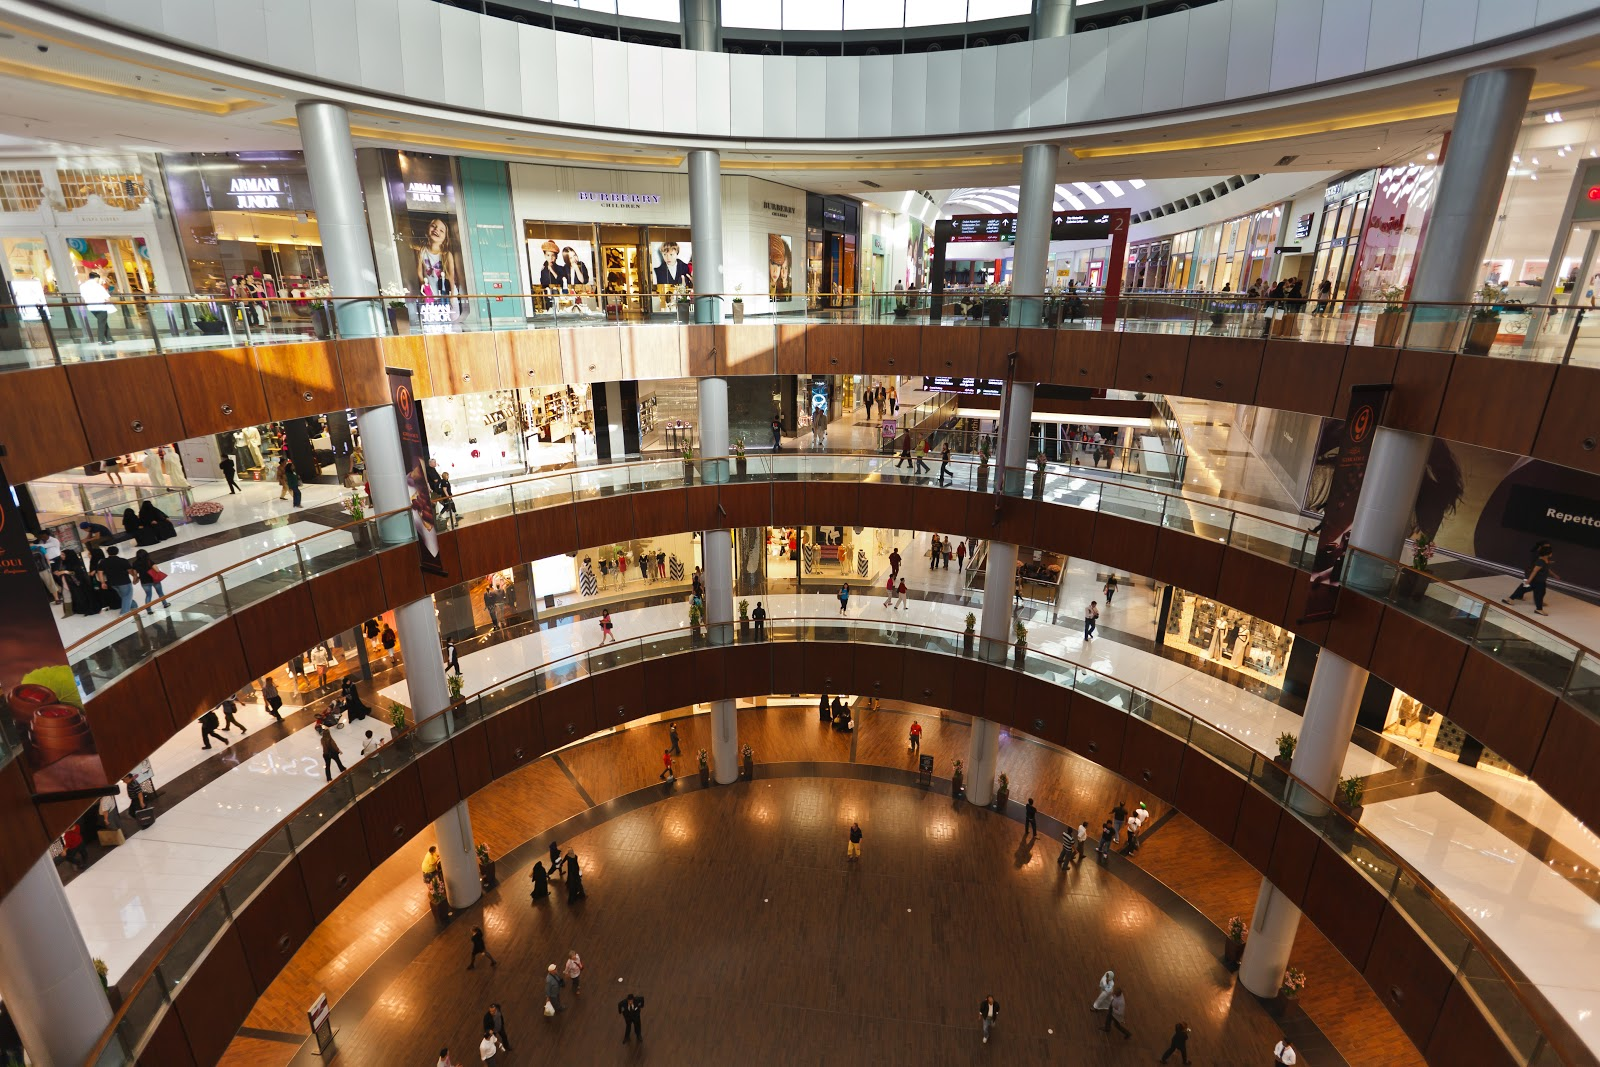 The dubai mall places4traveler best tourism vacation for Gucci hotel dubai